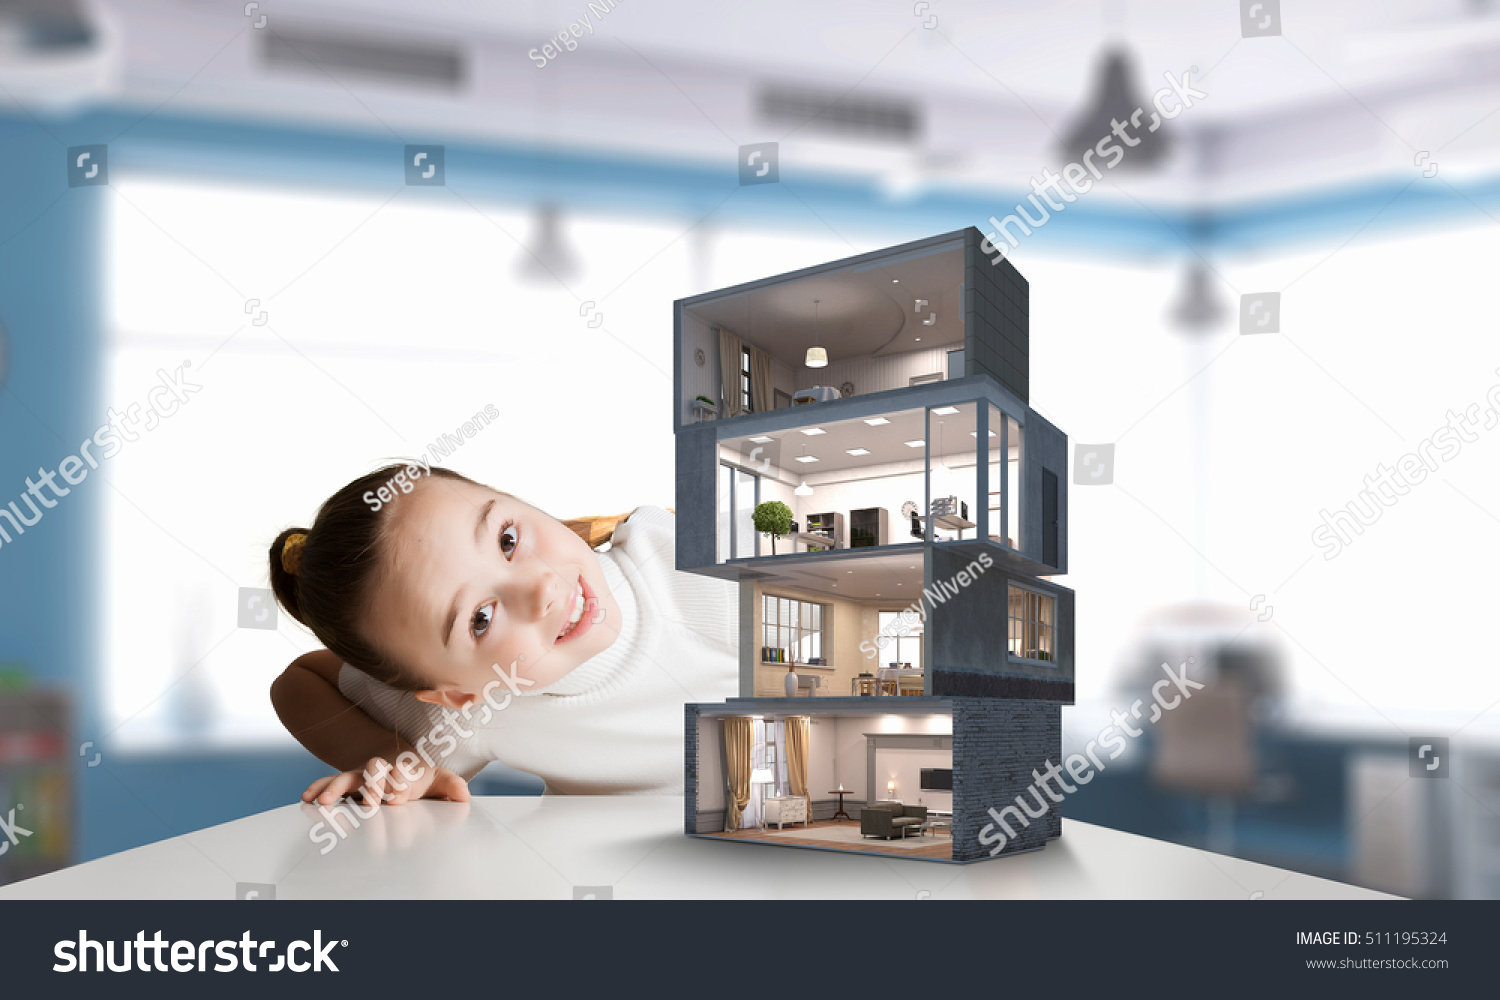 Design Your Dream House Mixed Media Stock Photo (Royalty Free ...